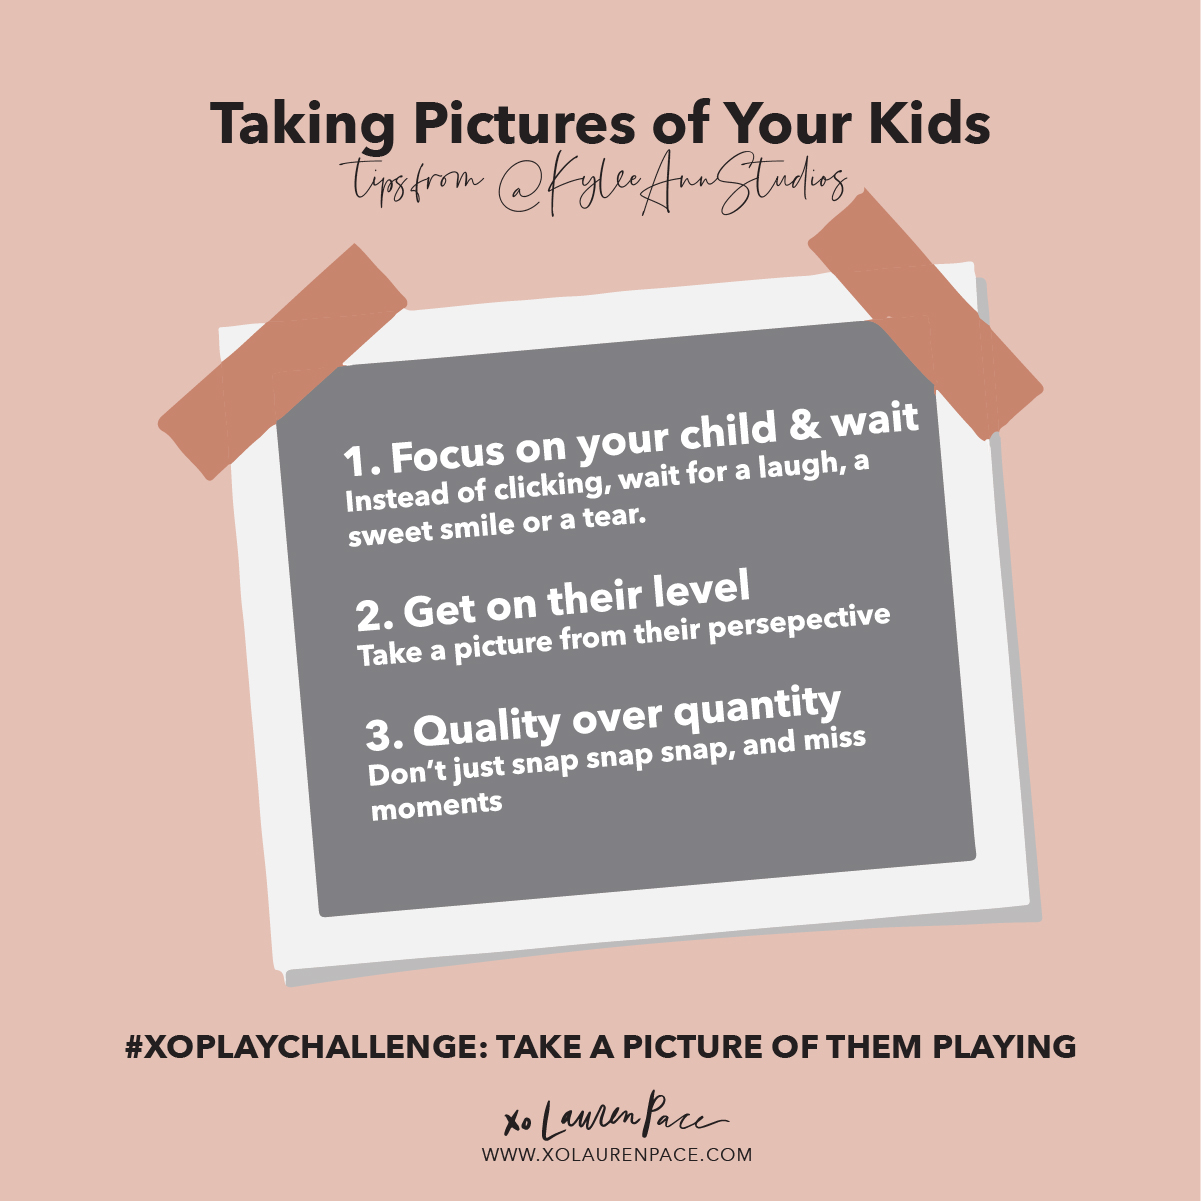 When you put so much focus on PLAY and this time where you played together... you are emphasizing what you value...and this means a LOT to them. When your kids see you take pictures of your dinner plate, or their baby sister… they realize what makes you excited. Today, point the camera at the little things.